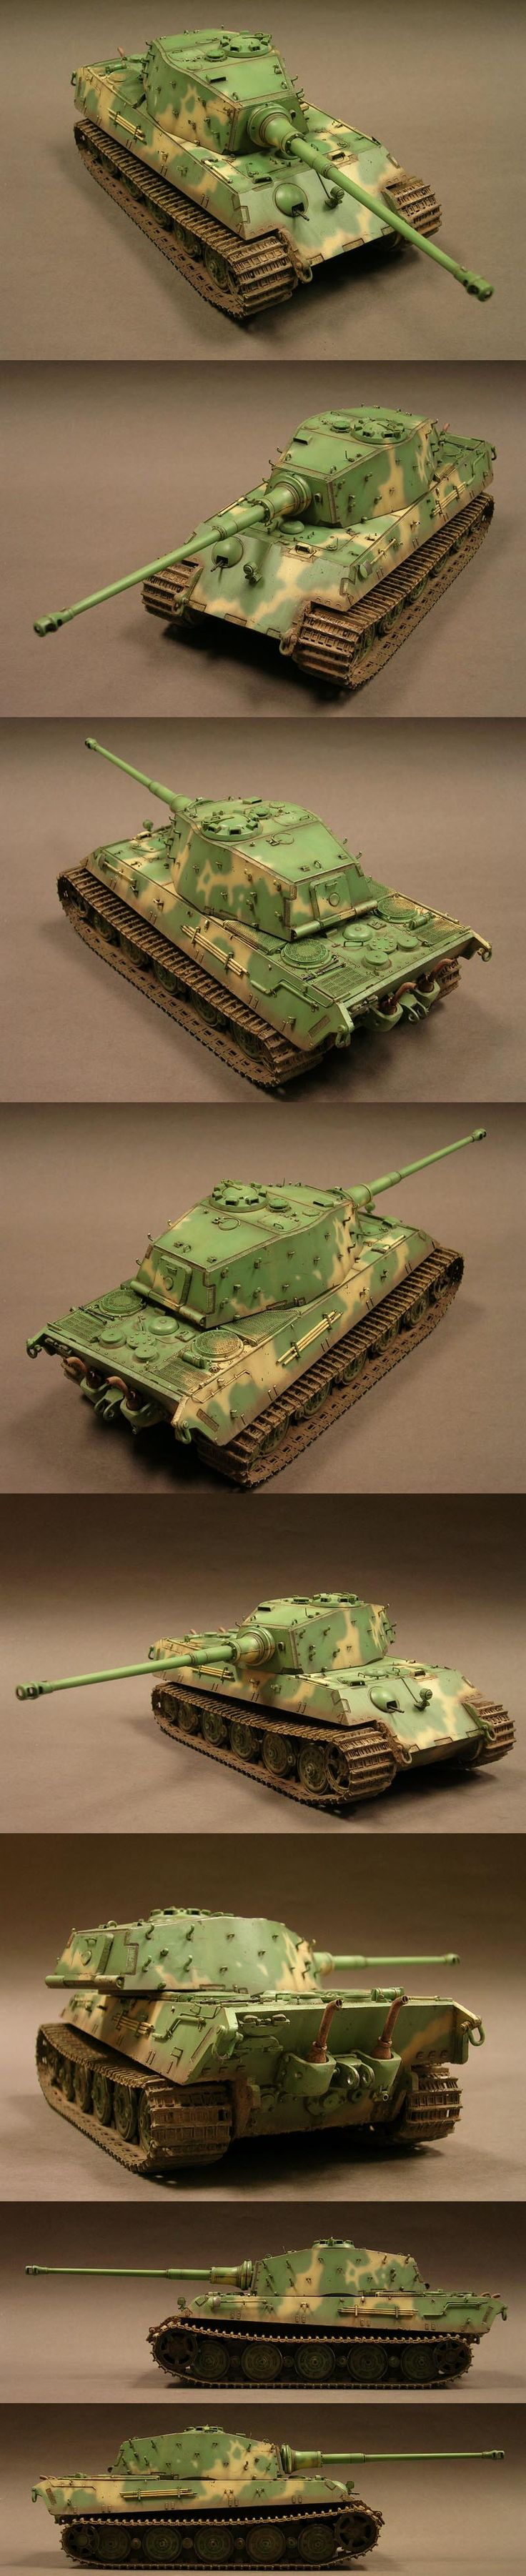 King Tiger 1/35 Scale Model